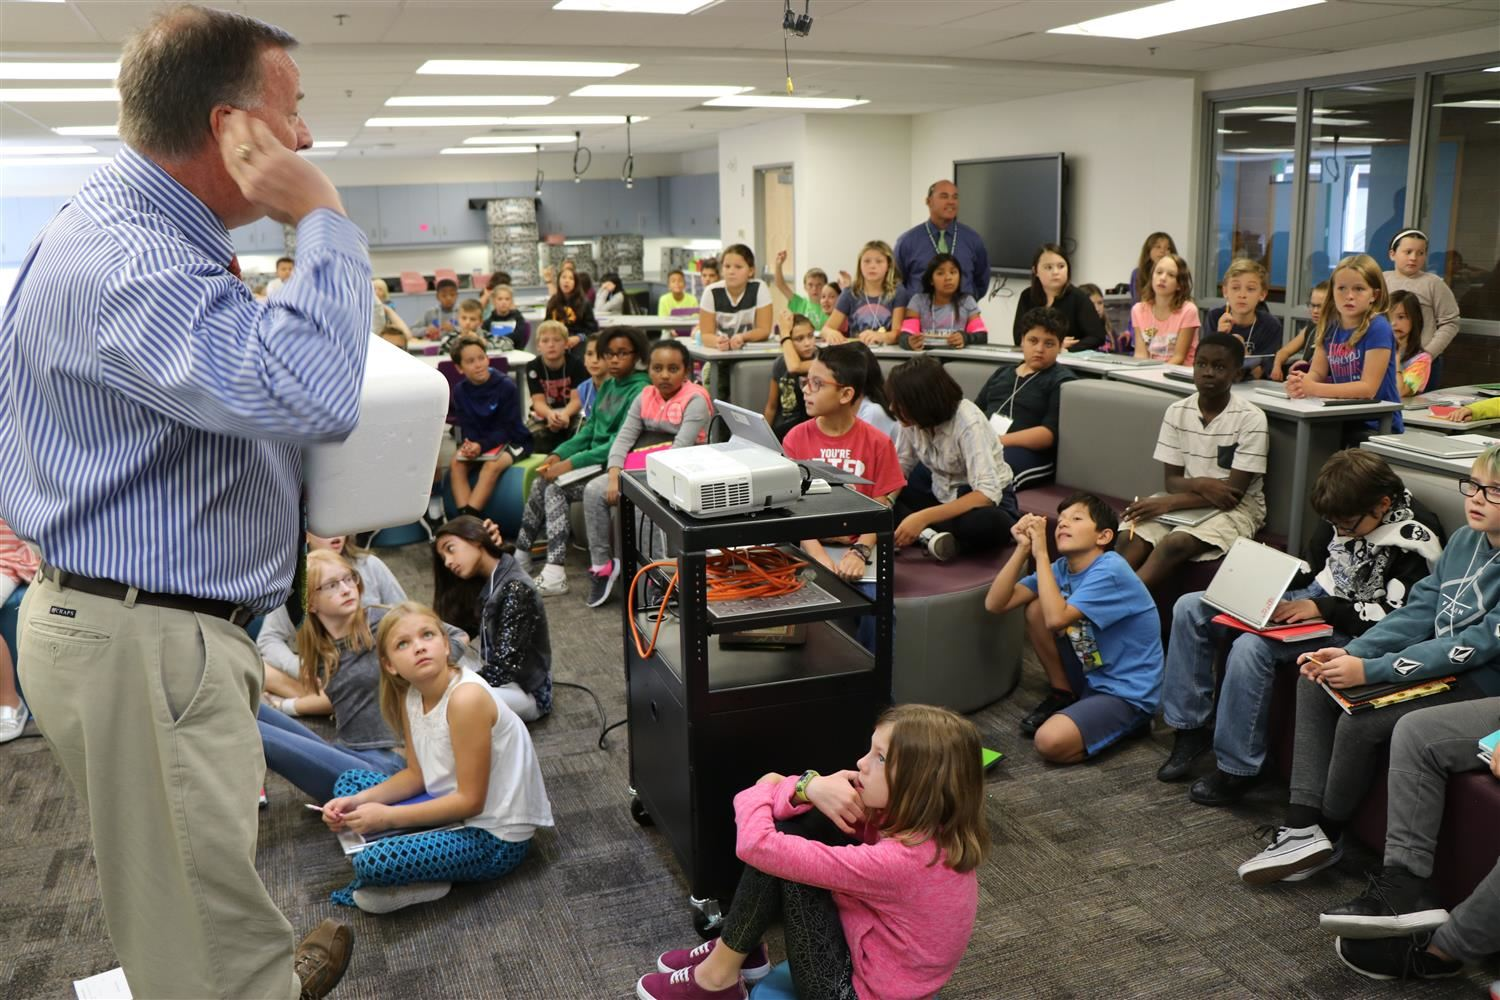 A teacher speaks to the entire class in their newly renovated library.